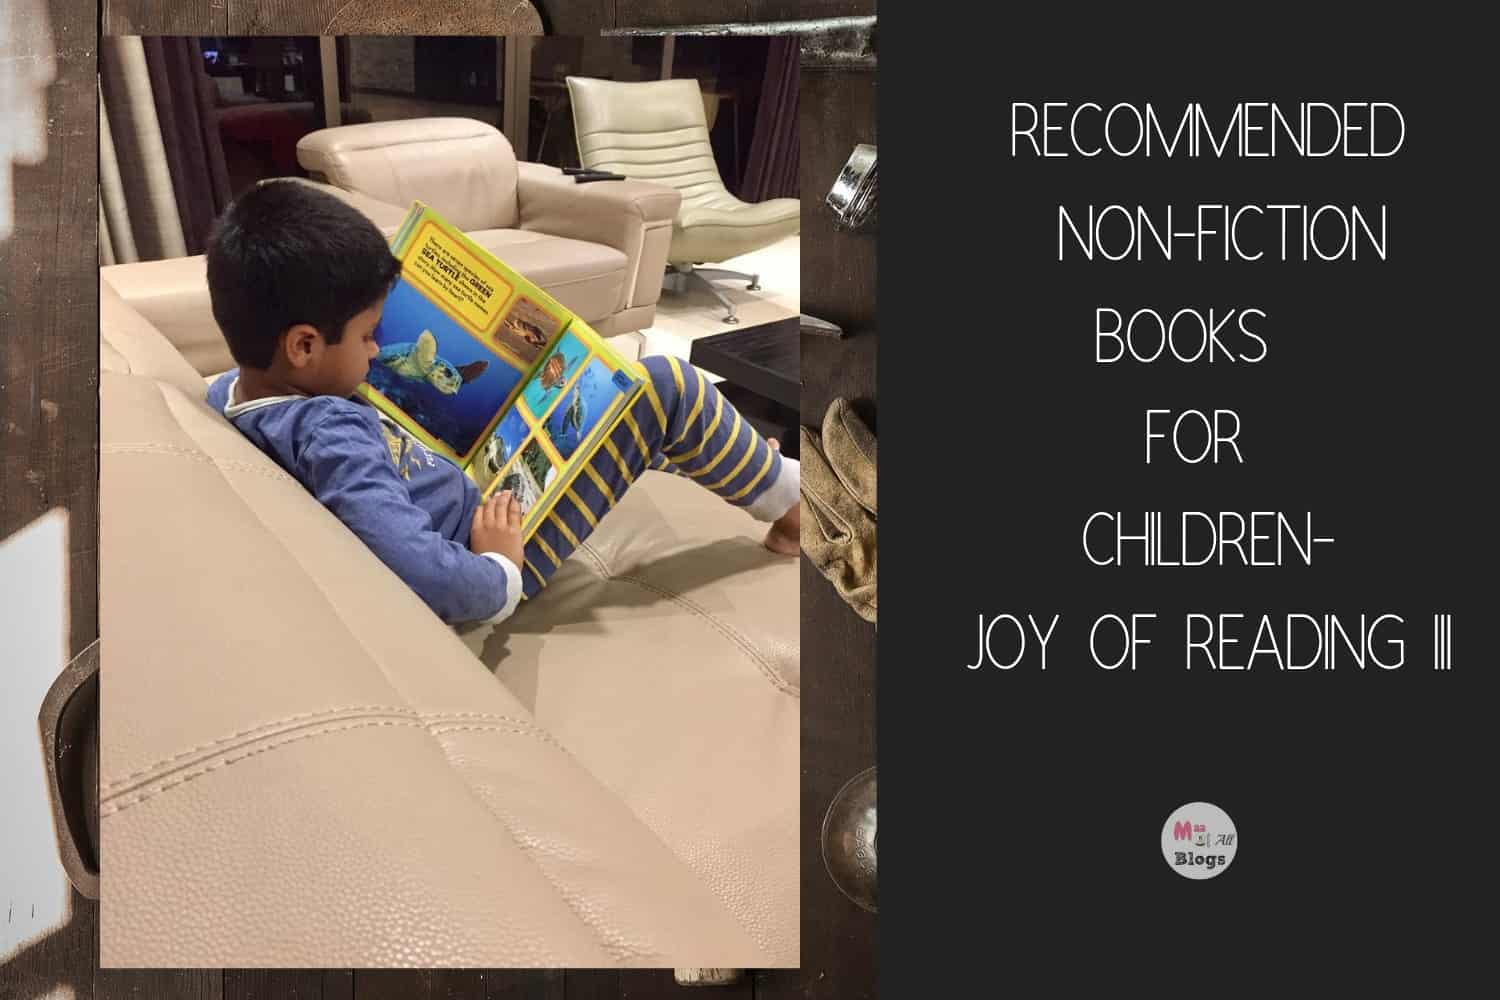 Recommended Non-Fiction Books for Children